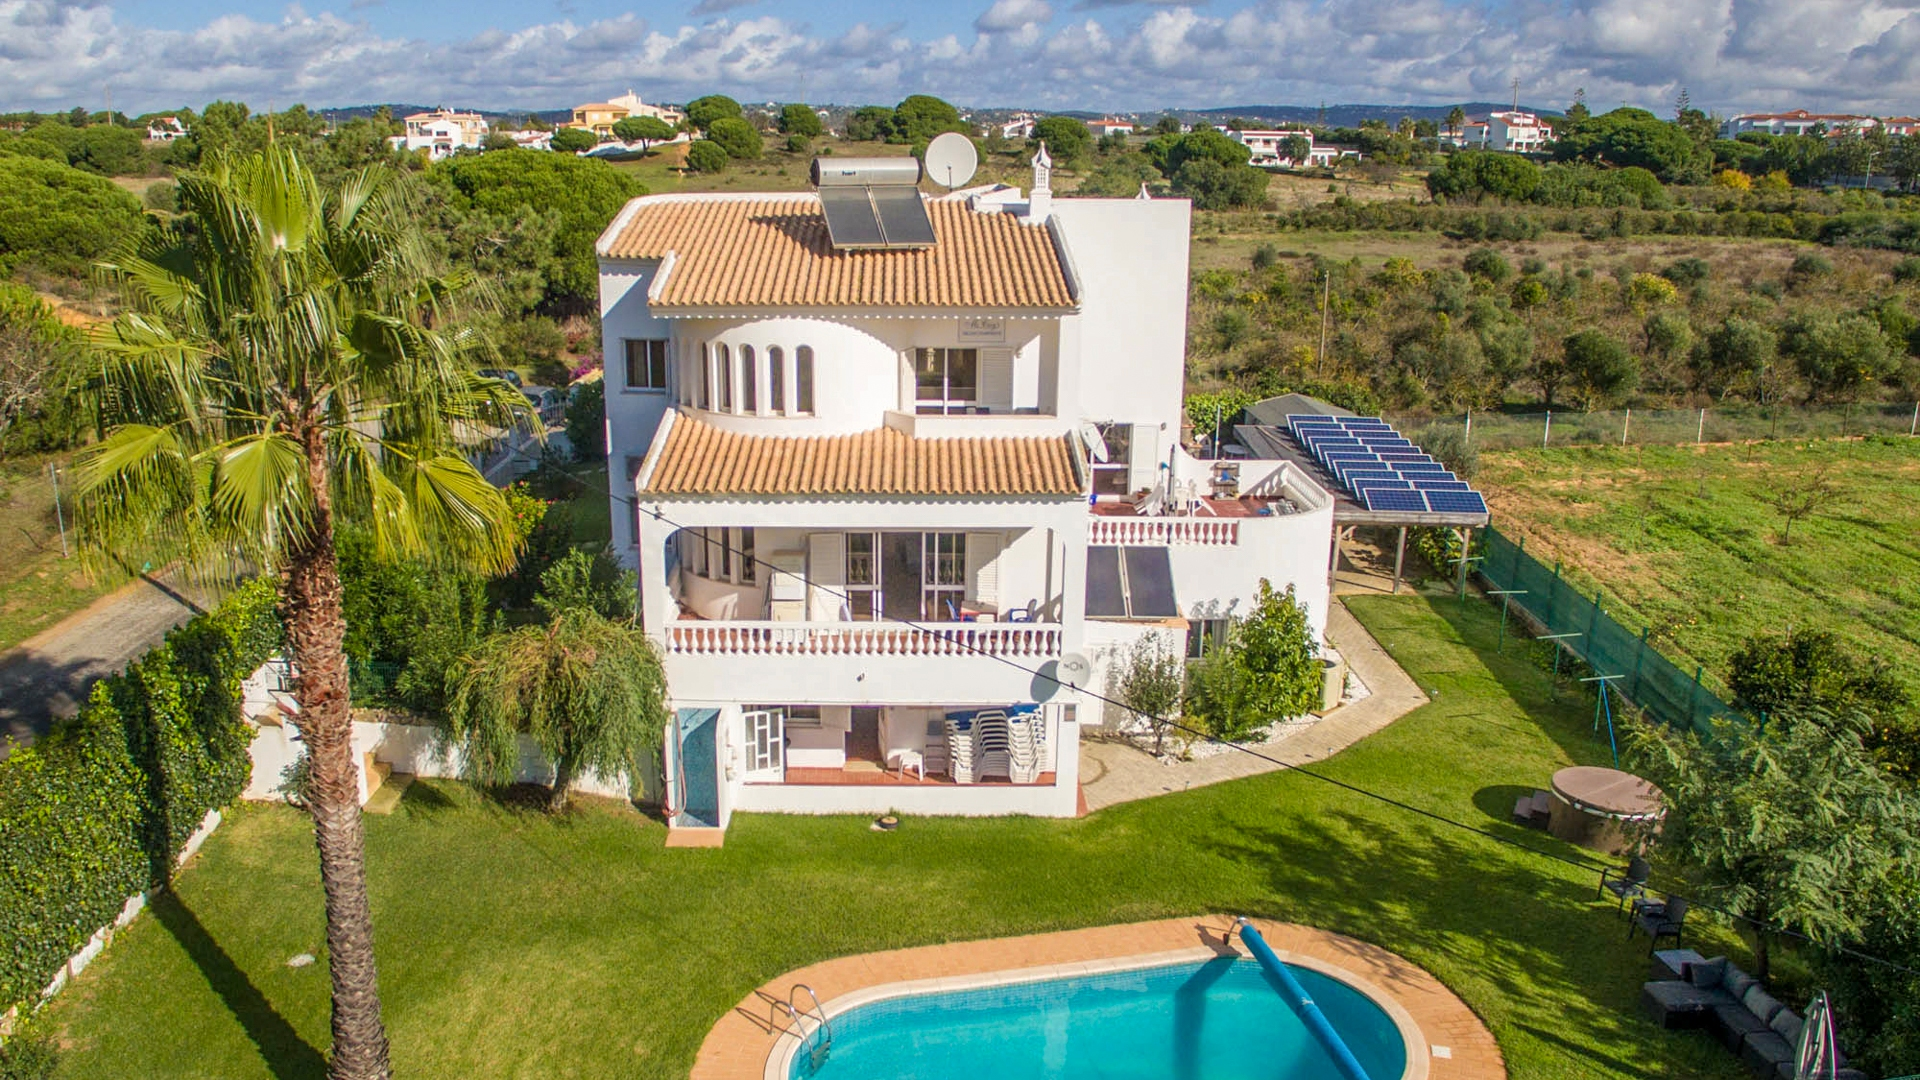 6 Bedroom Villa Close to the Beach, Olhos de Água, Albufeira | VM1453 This spacious property is in a quiet location situated very close to all amenities and only 15 minutes' walk from the picturesque Beach at Olhos de Água. This is a great opportunity to purchase a fully running and successful business with private accommodation.